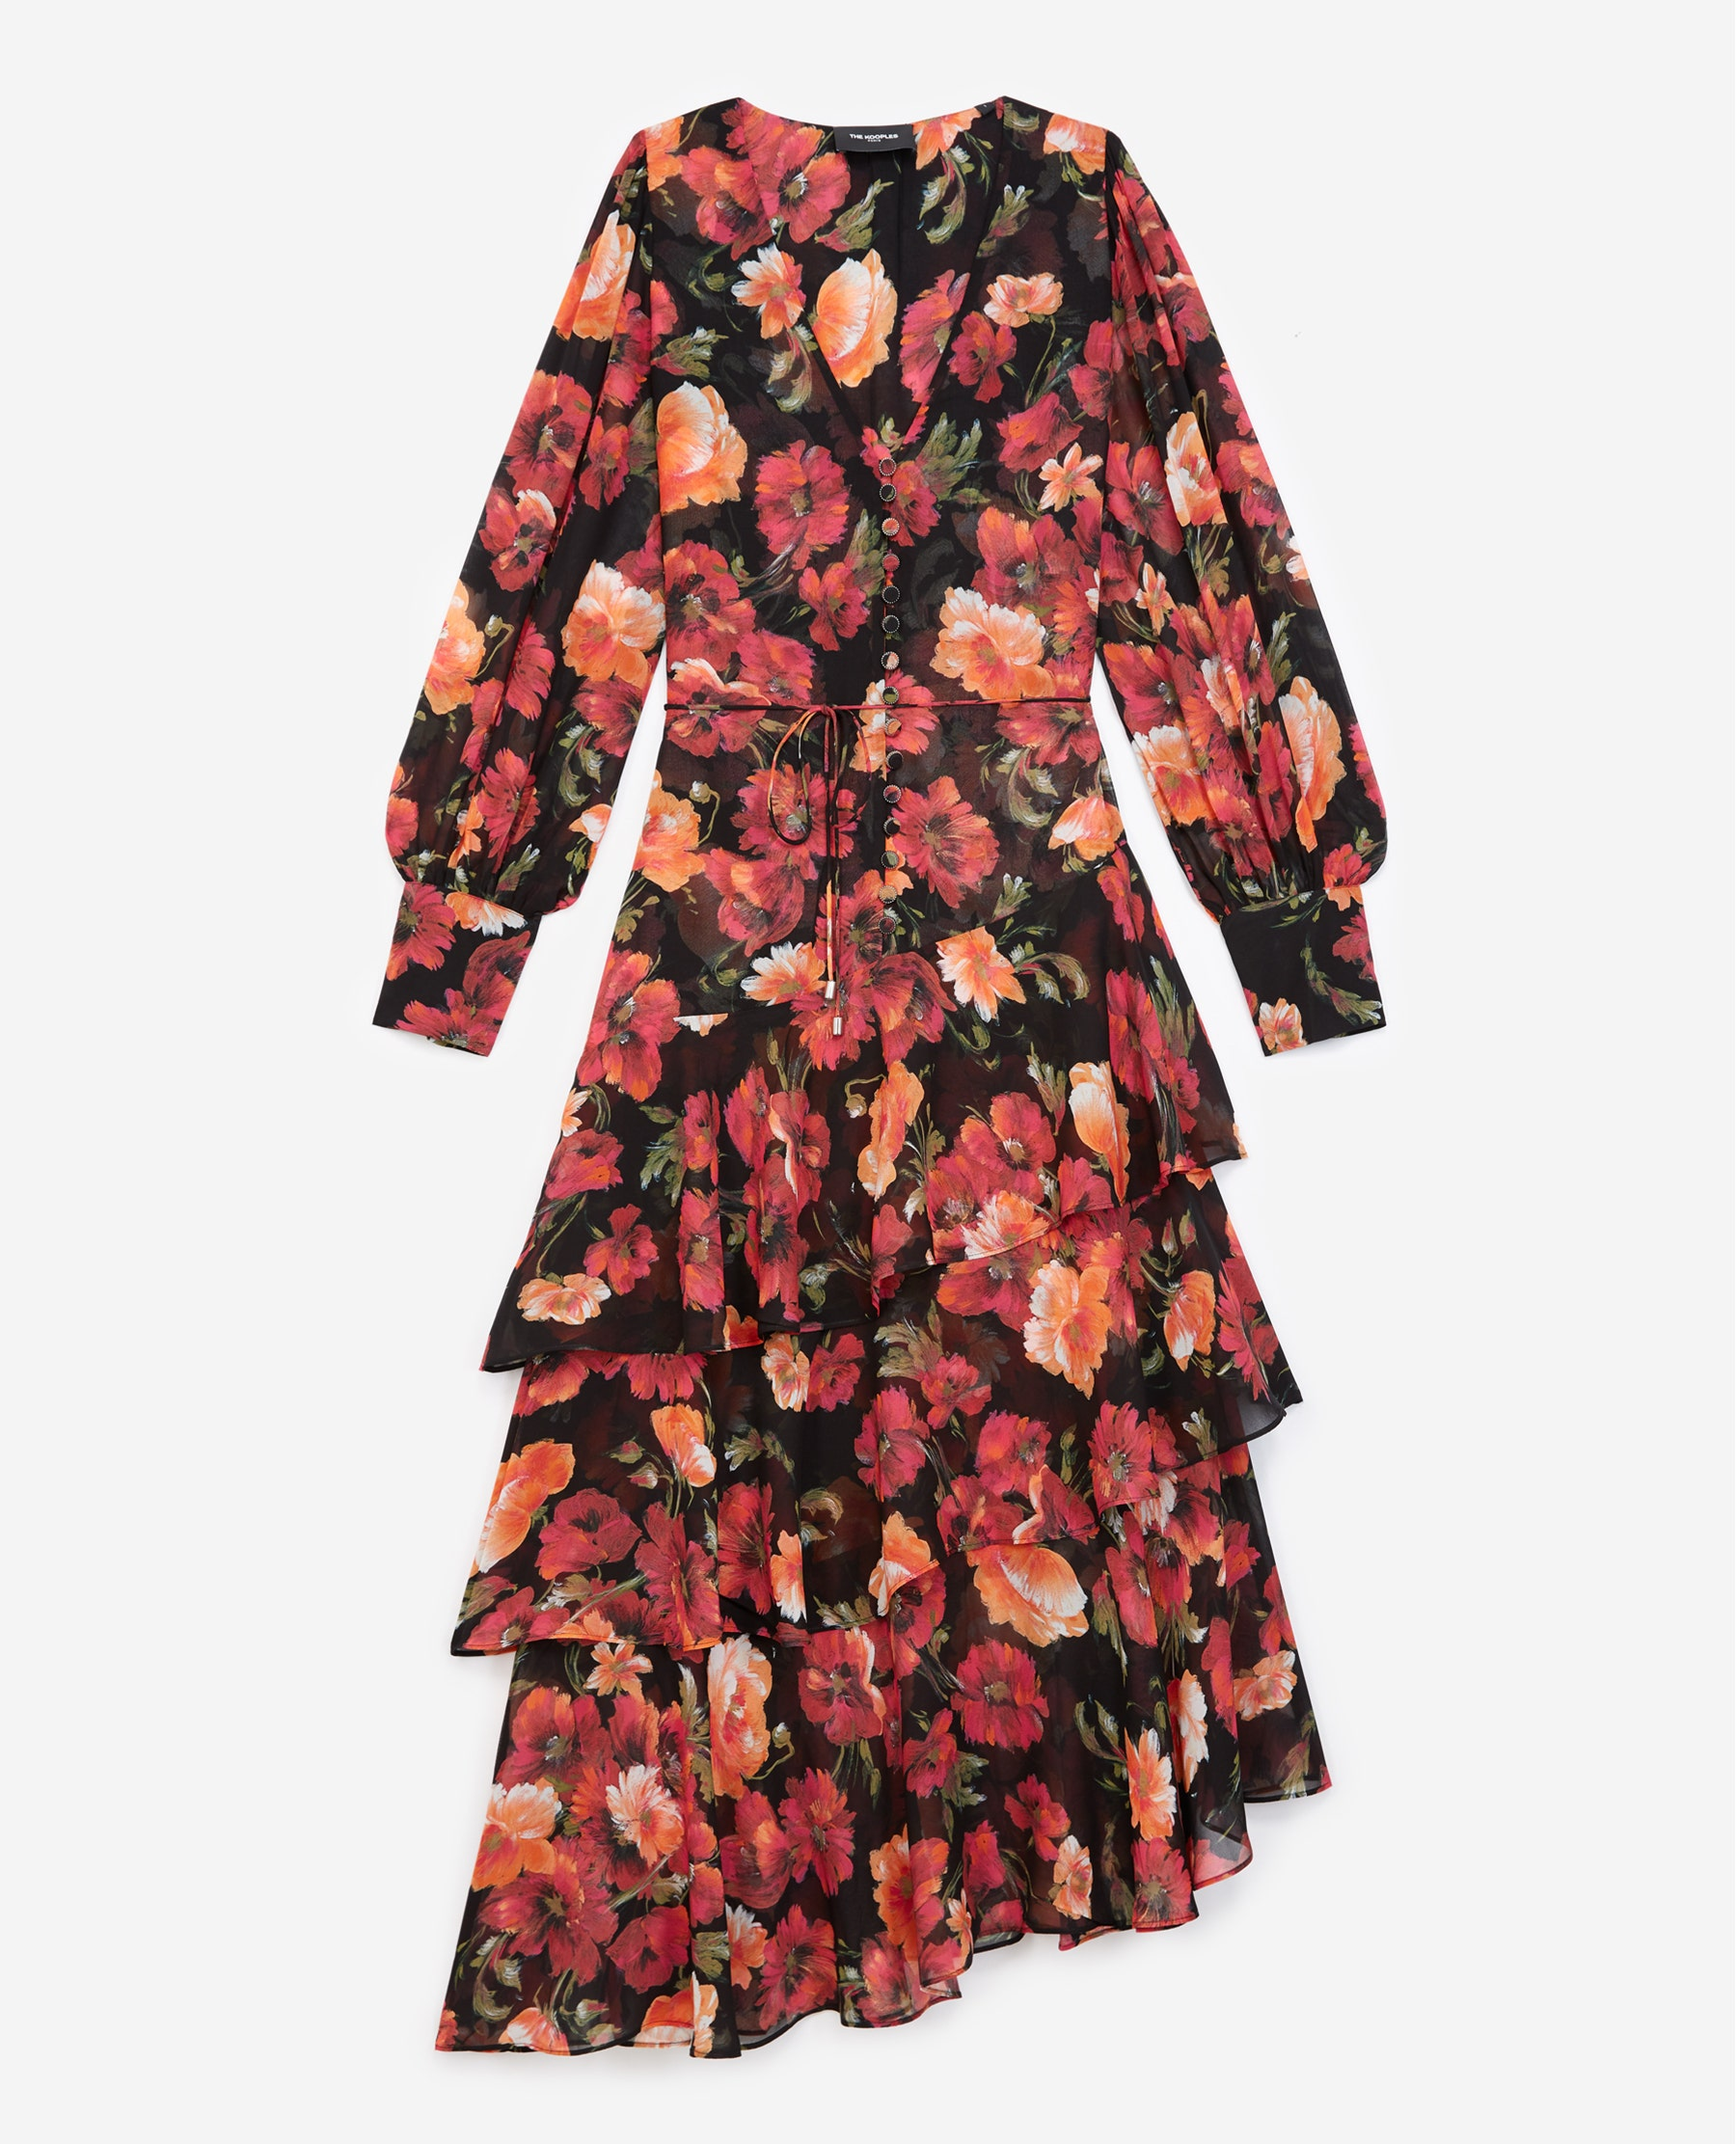 Robe longue volants à imprimé fleuri - The Kooples - Modalova